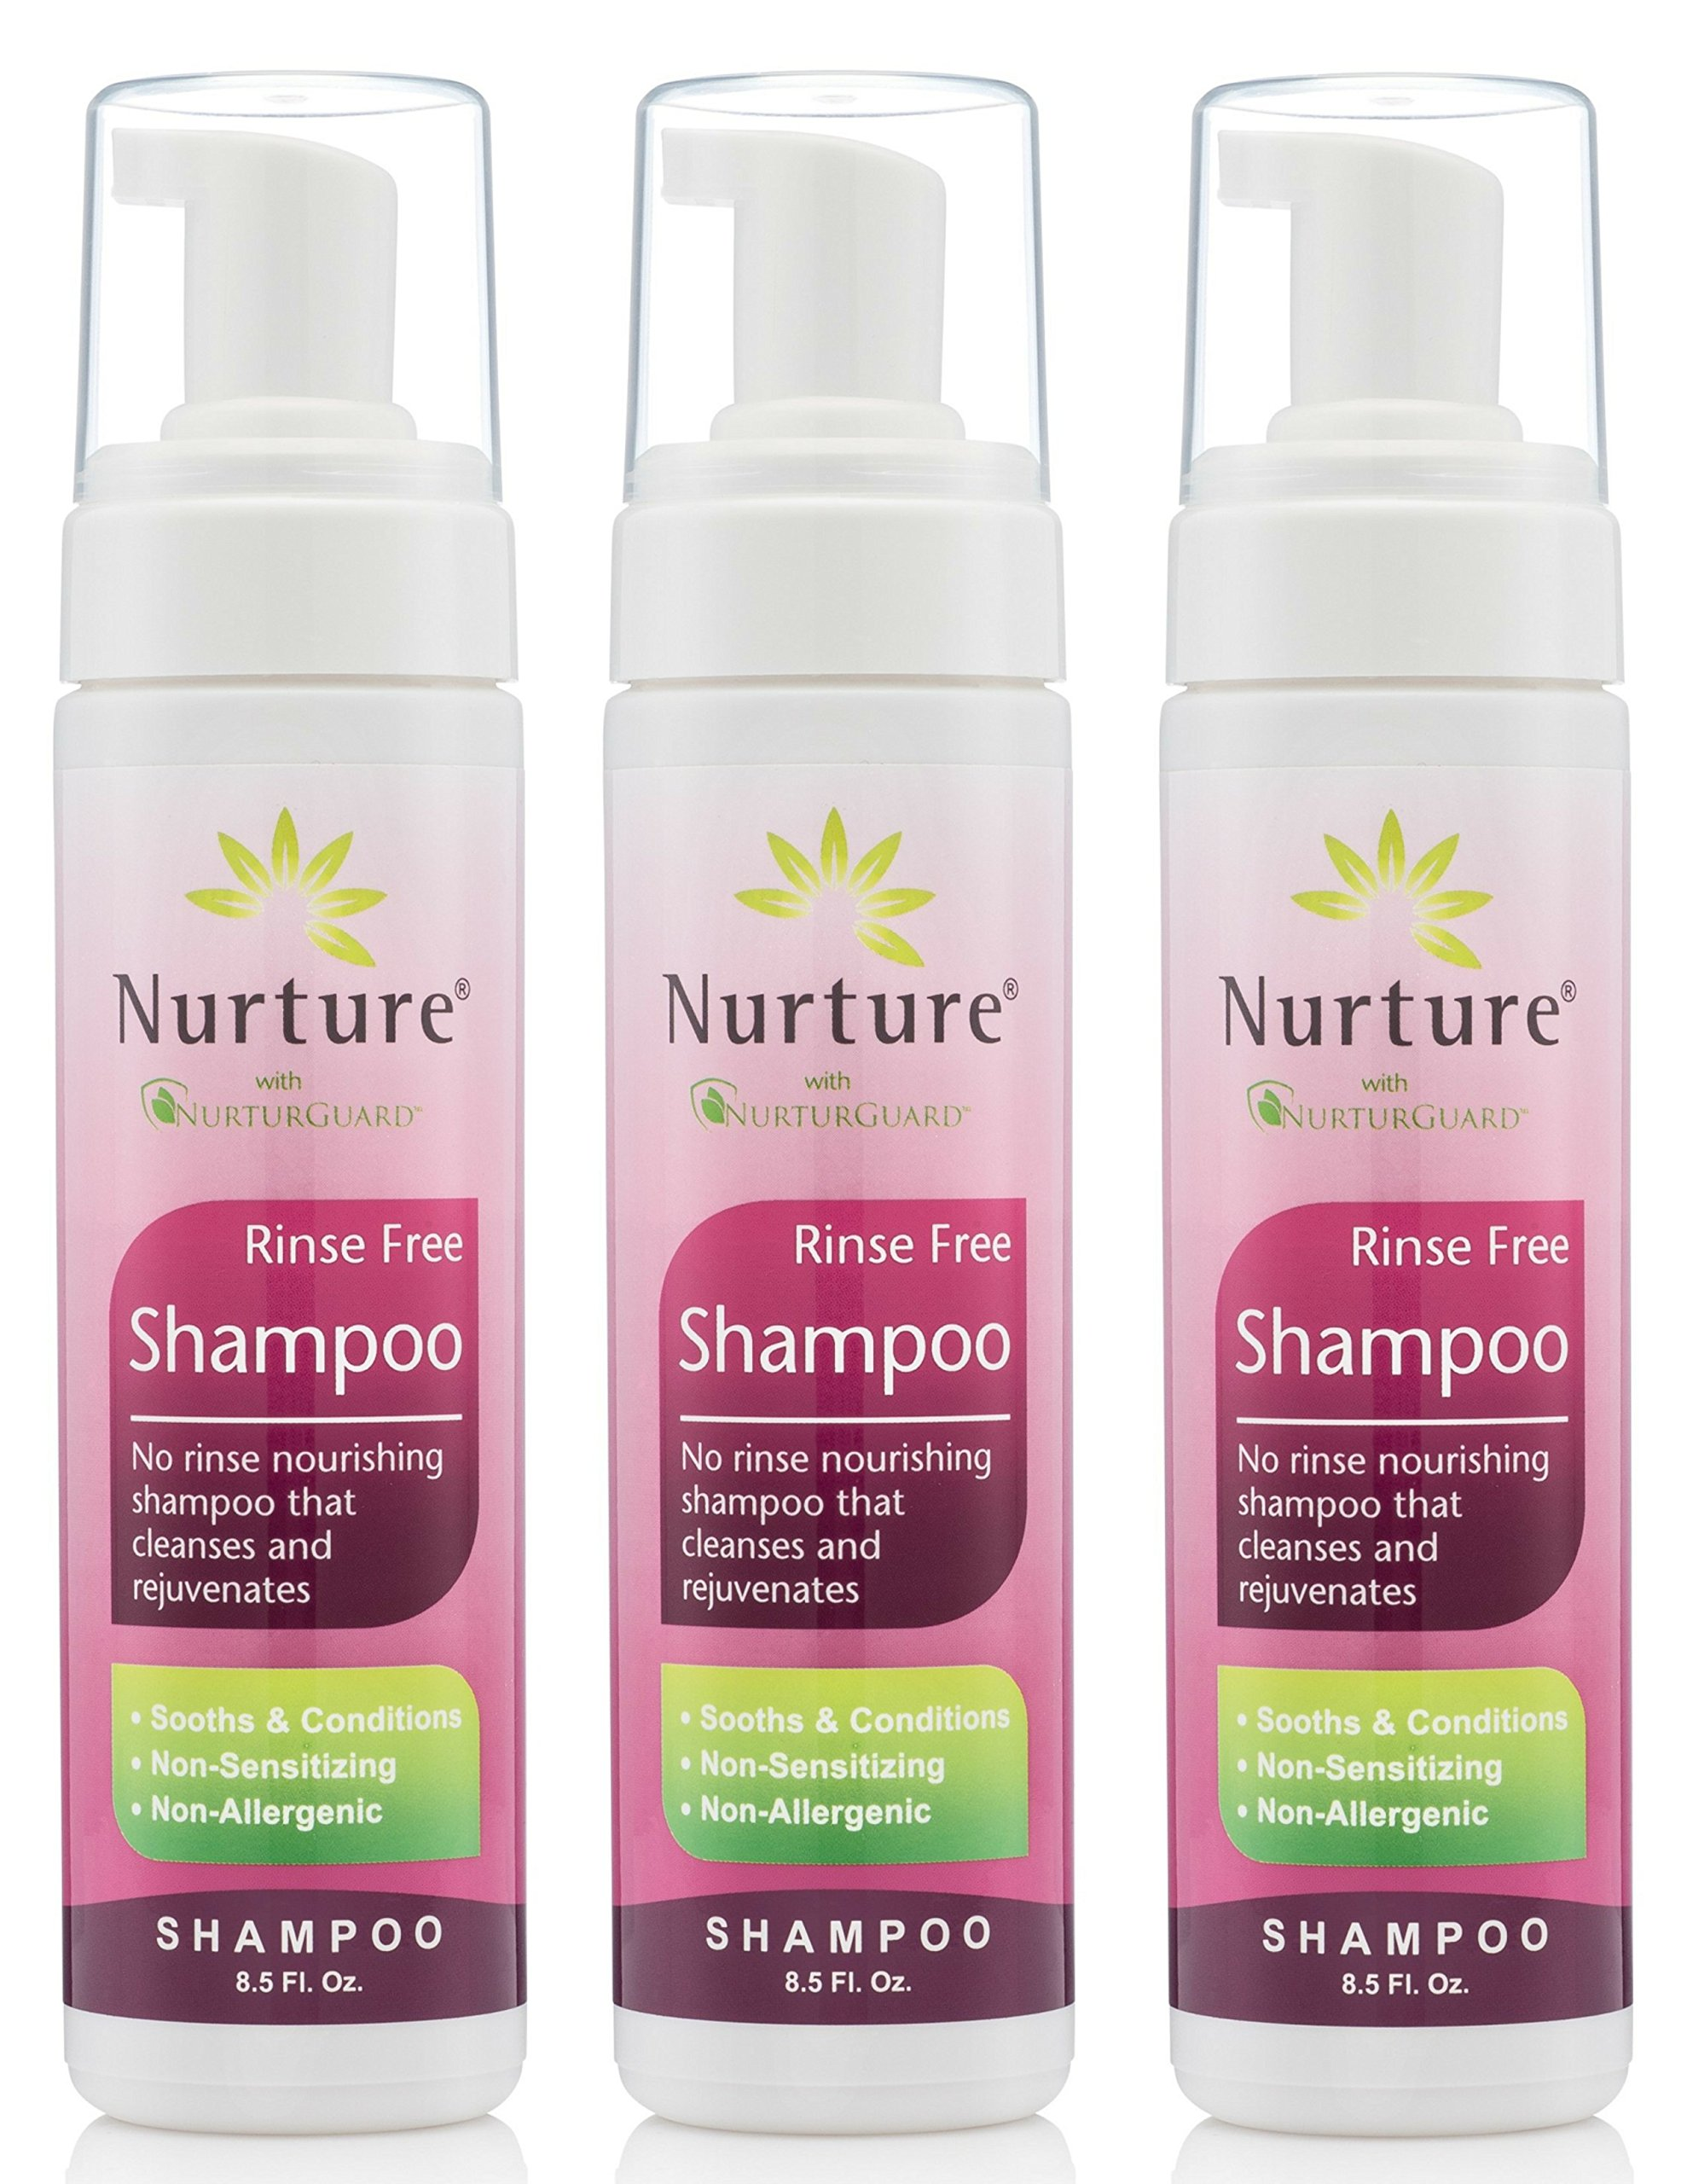 No Rinse Shampoo by Nurture | Rinse Free Shower Cap Alternative - Foaming Pump Bottle - Waterless Nourishing Foam Shampoo That Cleanses and Rejuvenates - 3 Bottles - 8.5 fl oz Each by Nurture